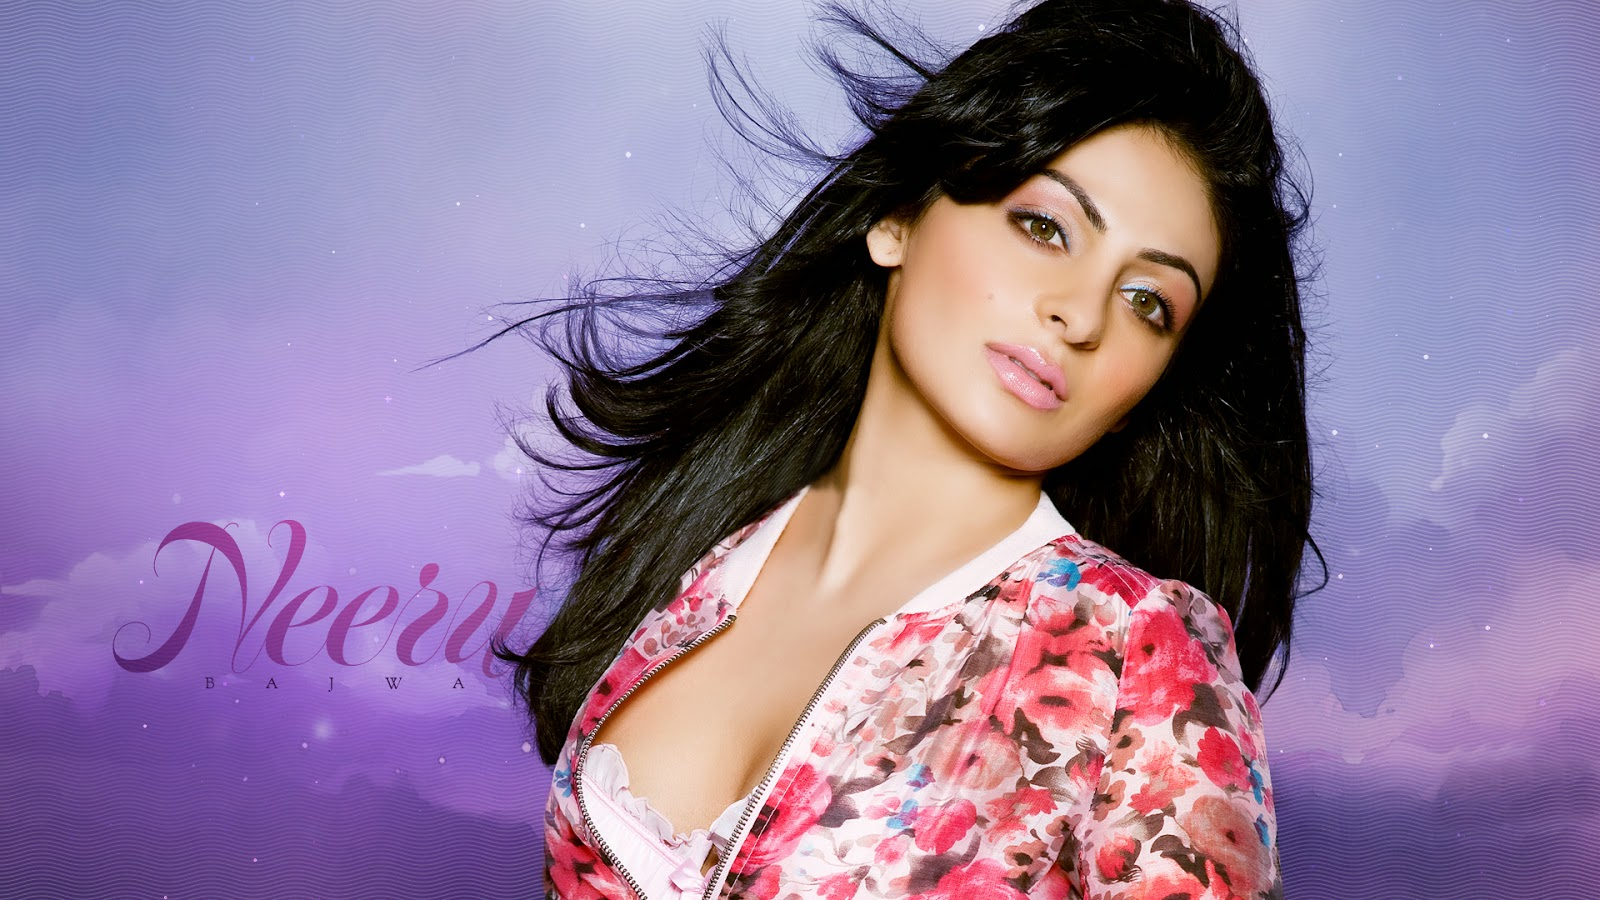 Desi Girl Wallpapers Download